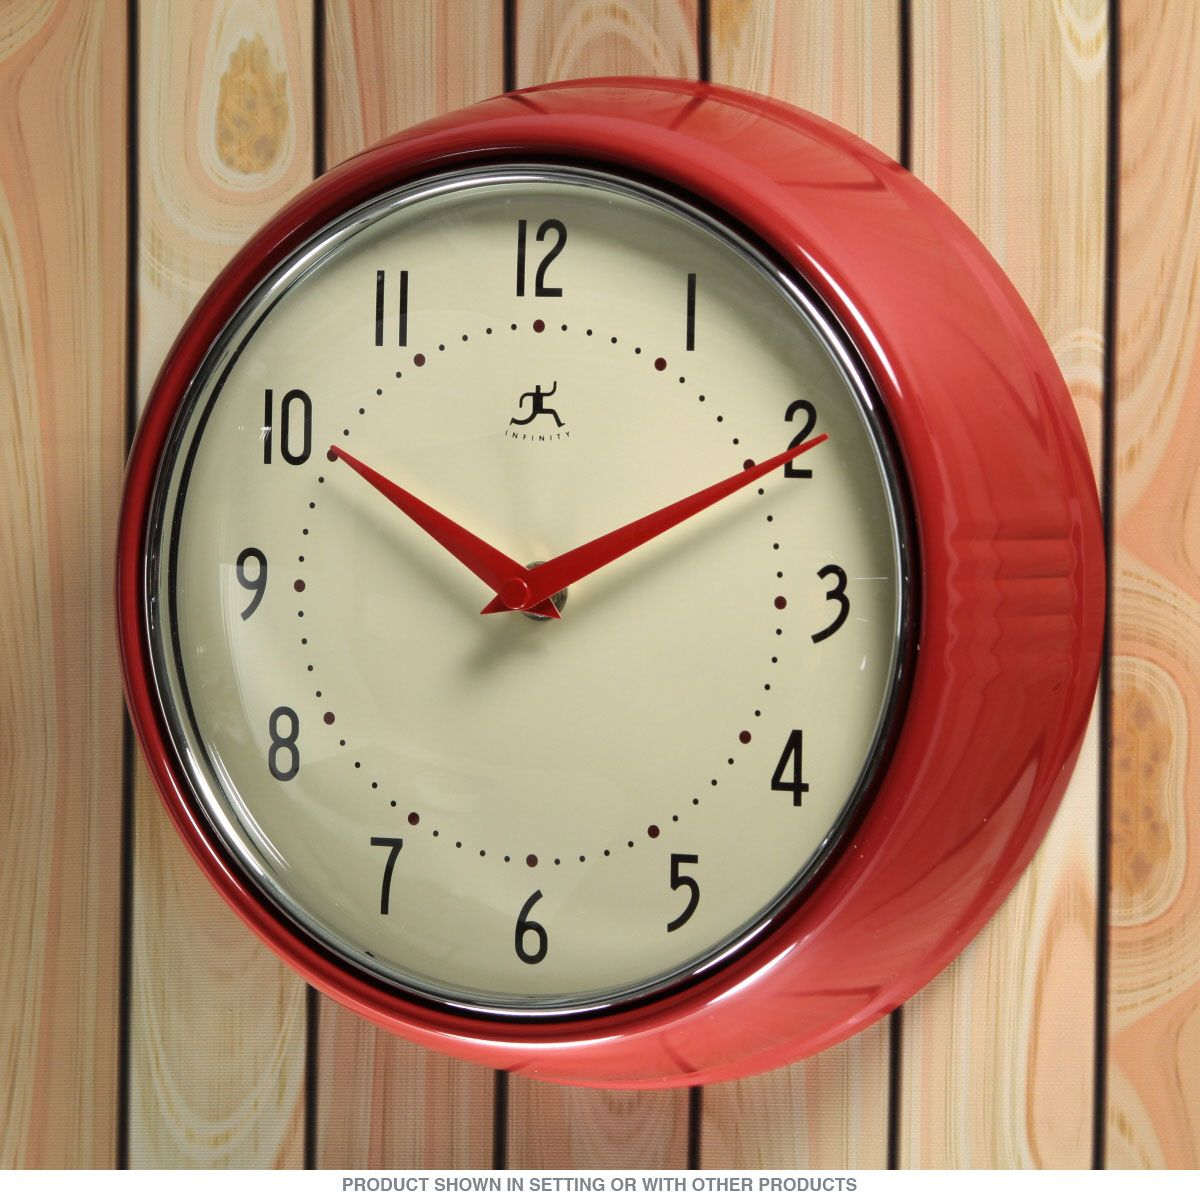 red retro kitchen clock amazon bring some vintage style into your kitchen with this retro kitchen clock in red perfect for rooms decorated diner style clock features metal red fiftiesstyle wall 2018 mid century modern